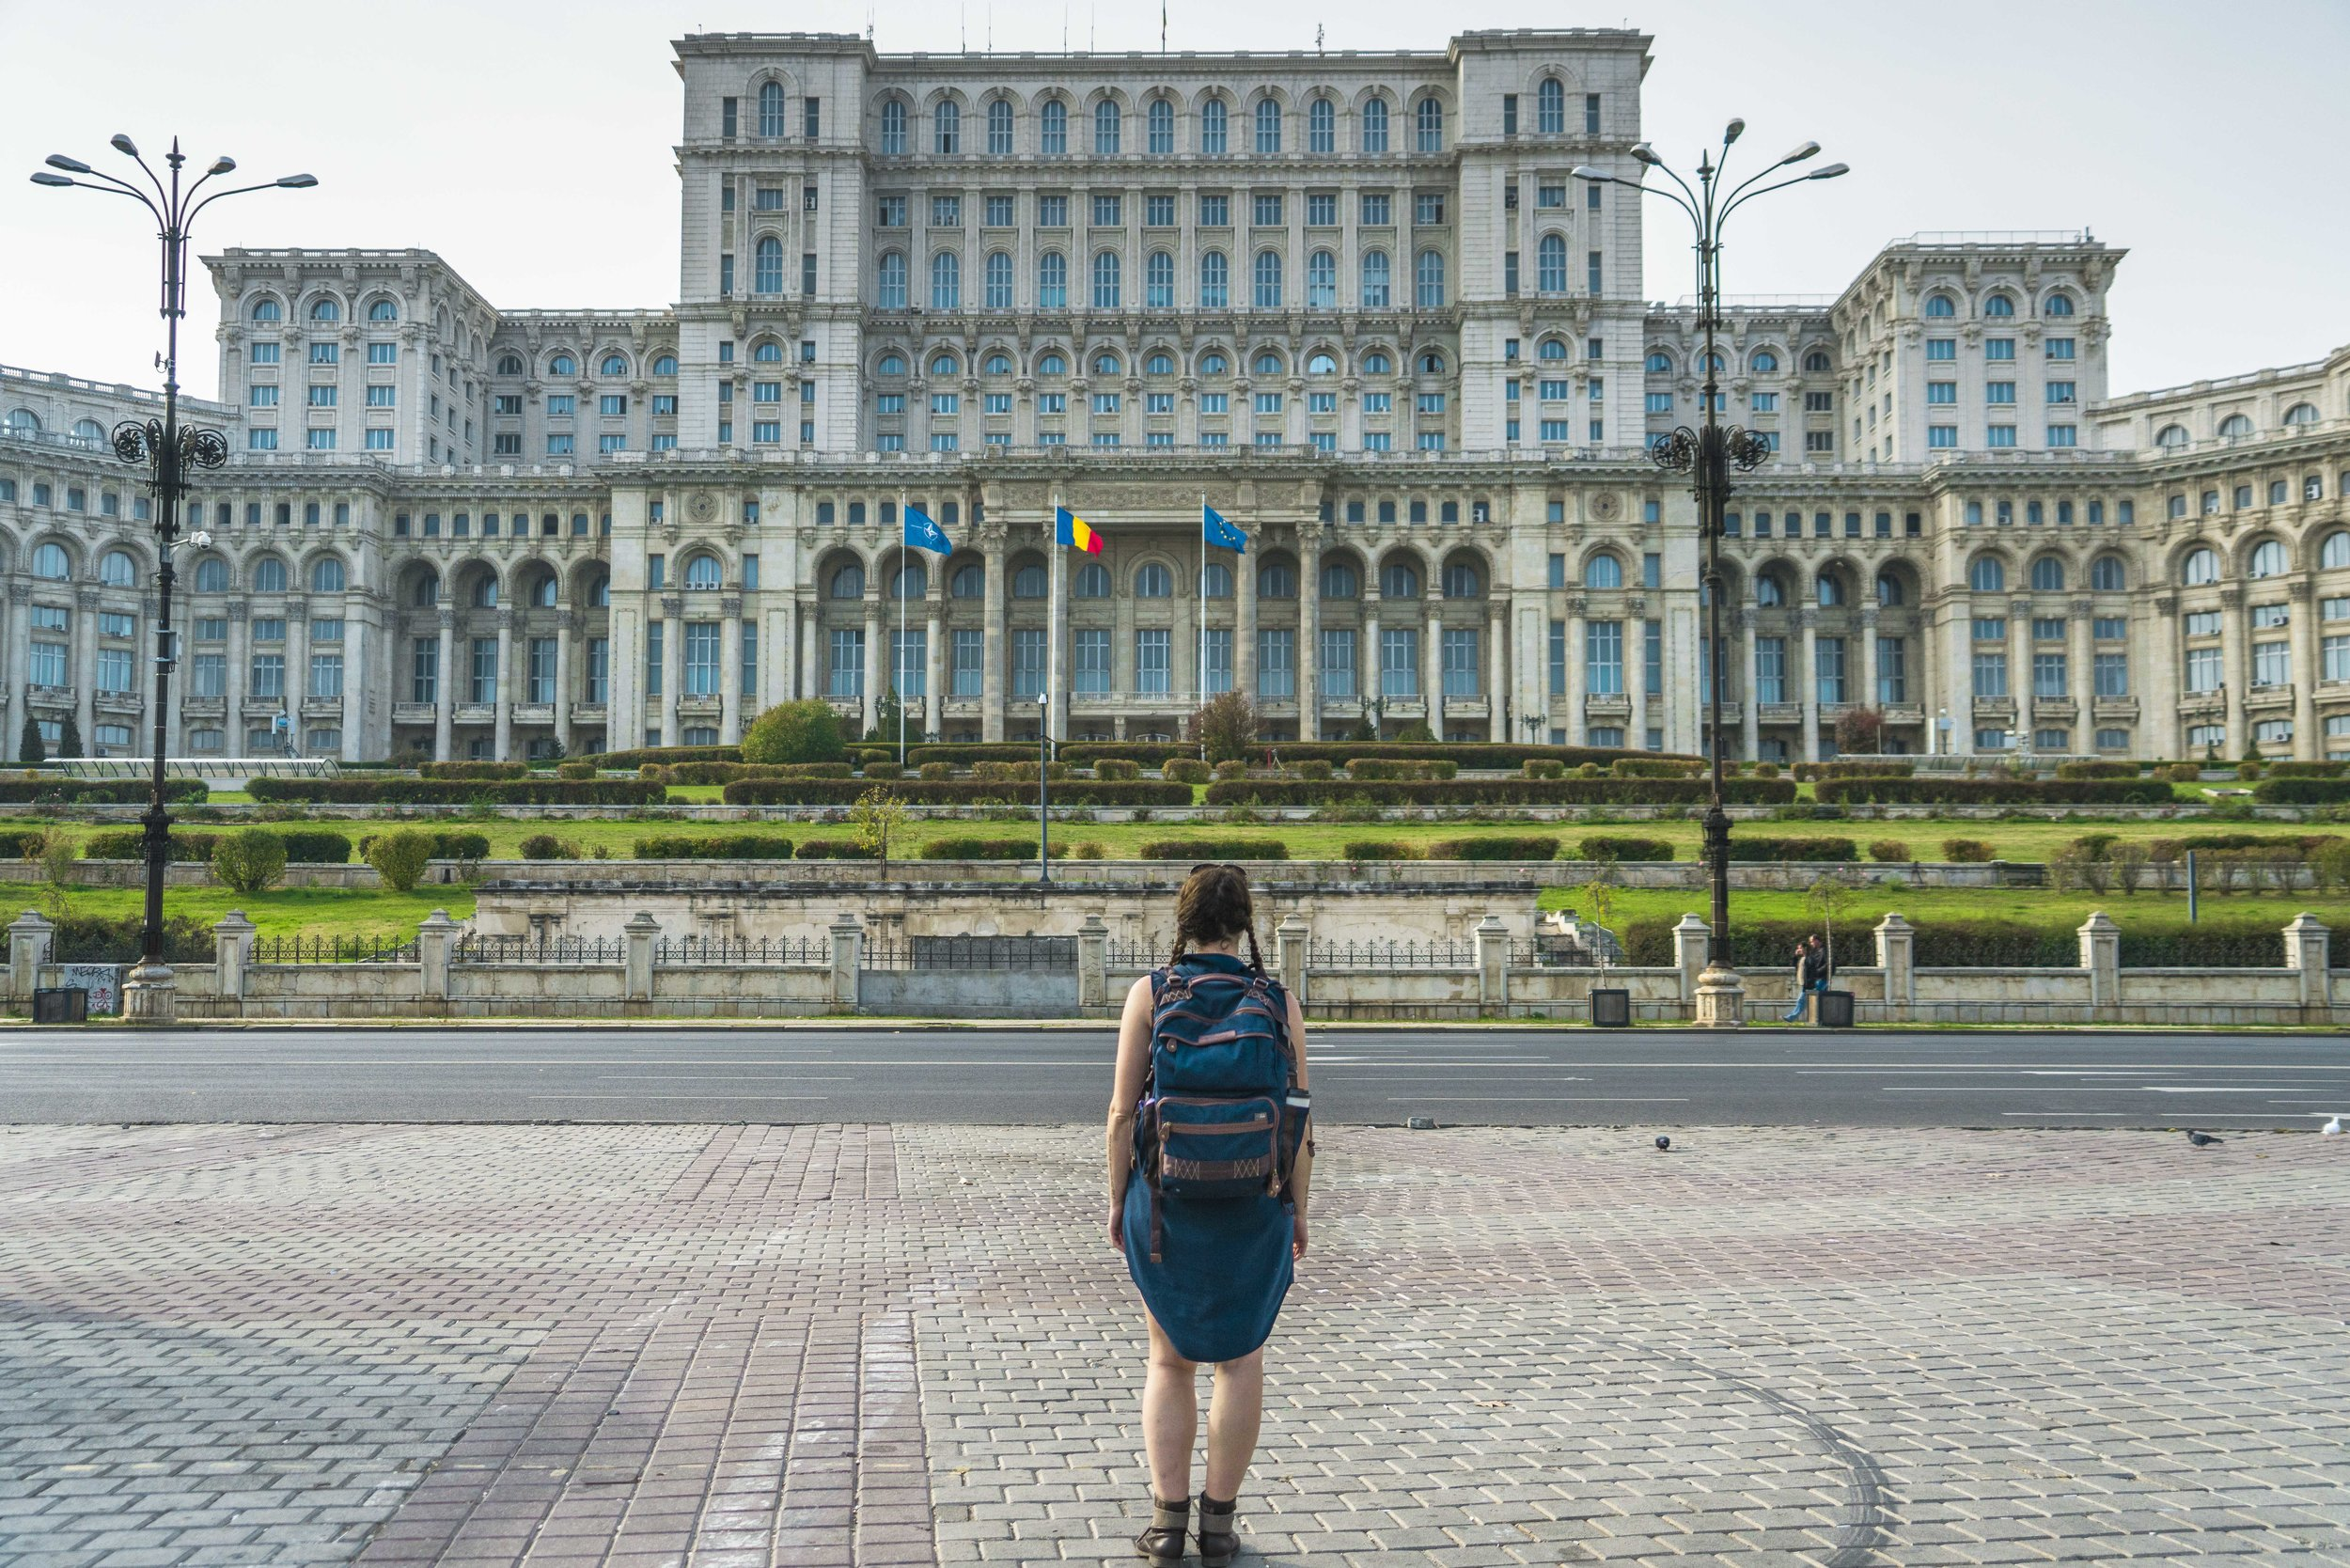 In front of Romanian Parliament in Bucharest